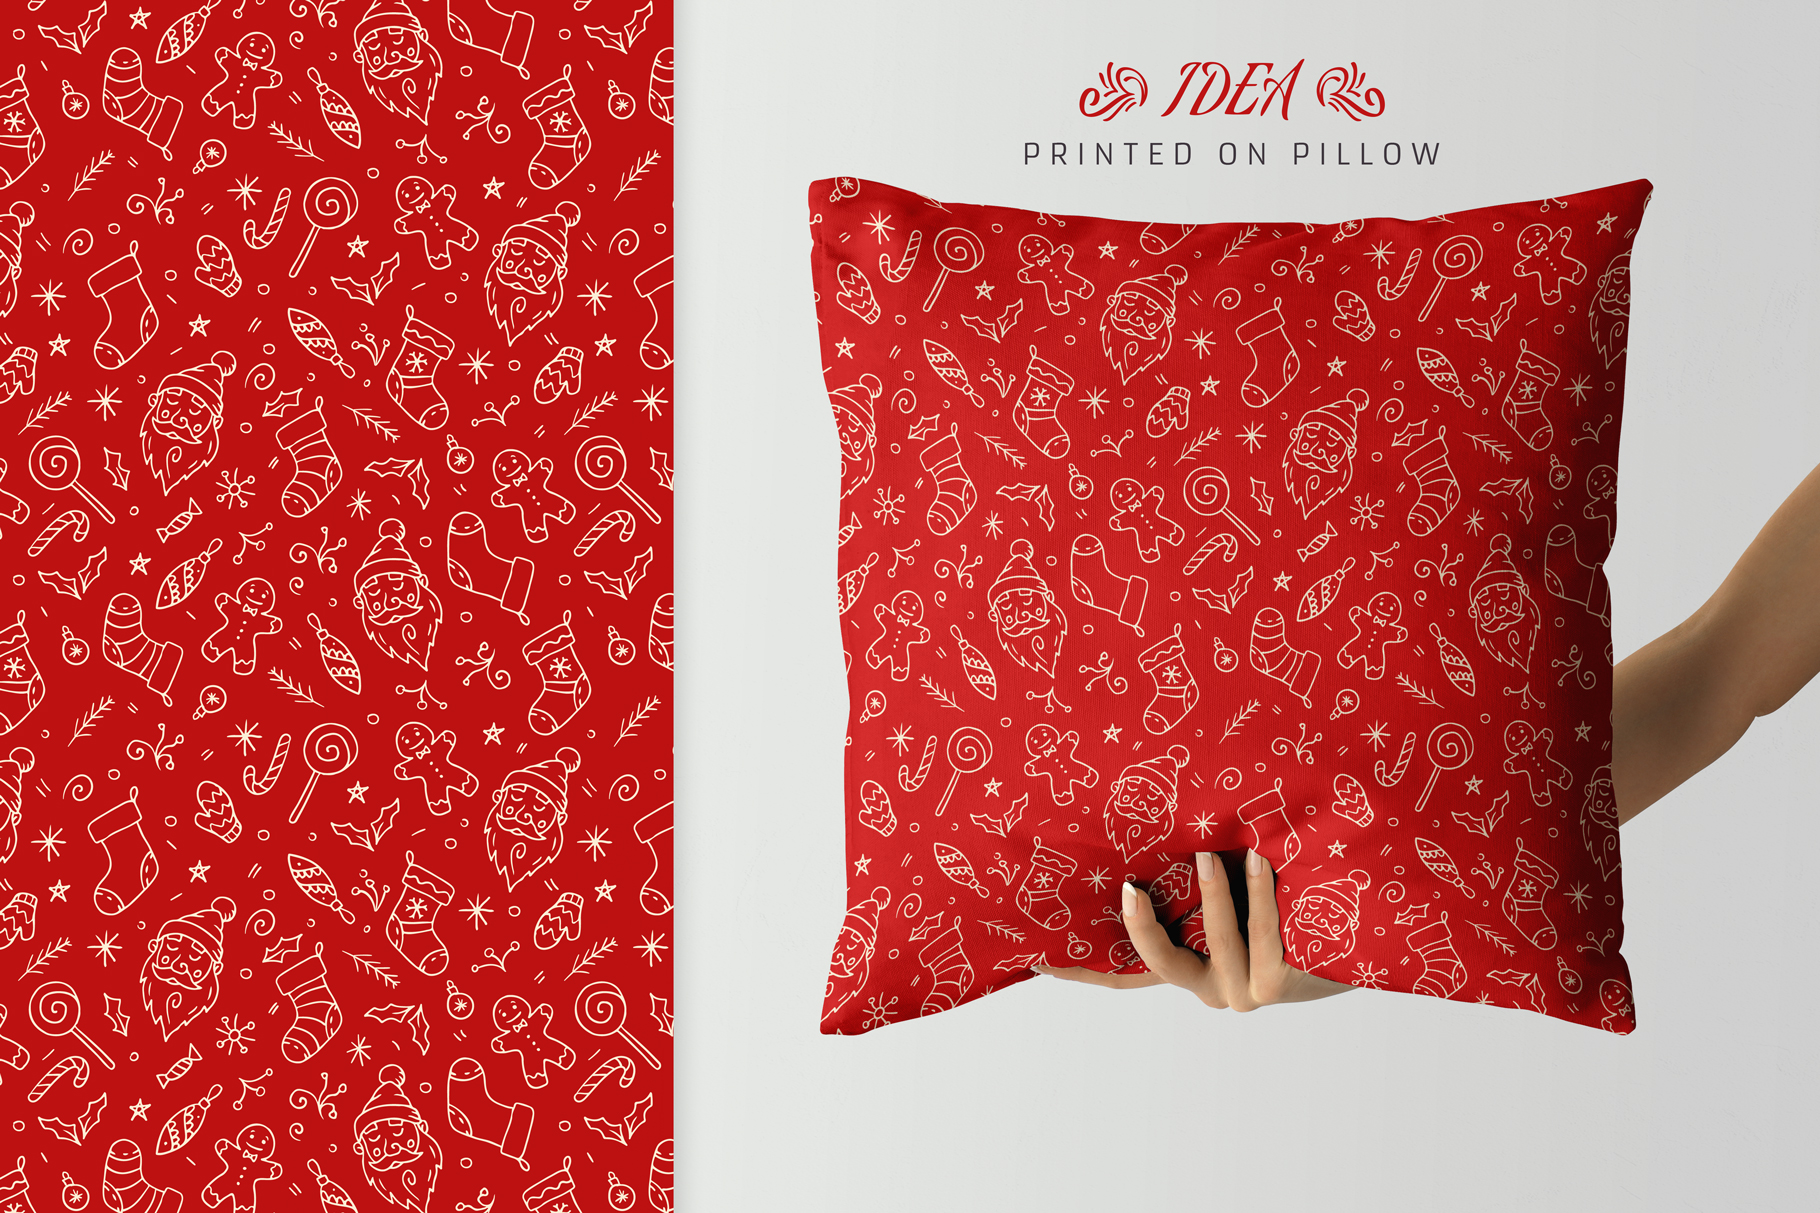 100 Seamless Patterns Vol.4 Christmas example image 14